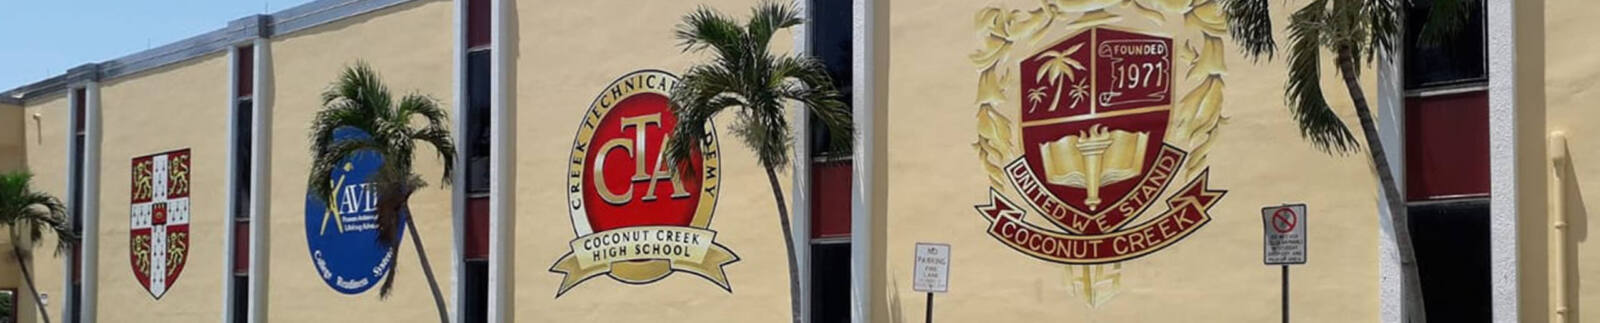 Coconut Creek High School, Coconut Creek, Florida